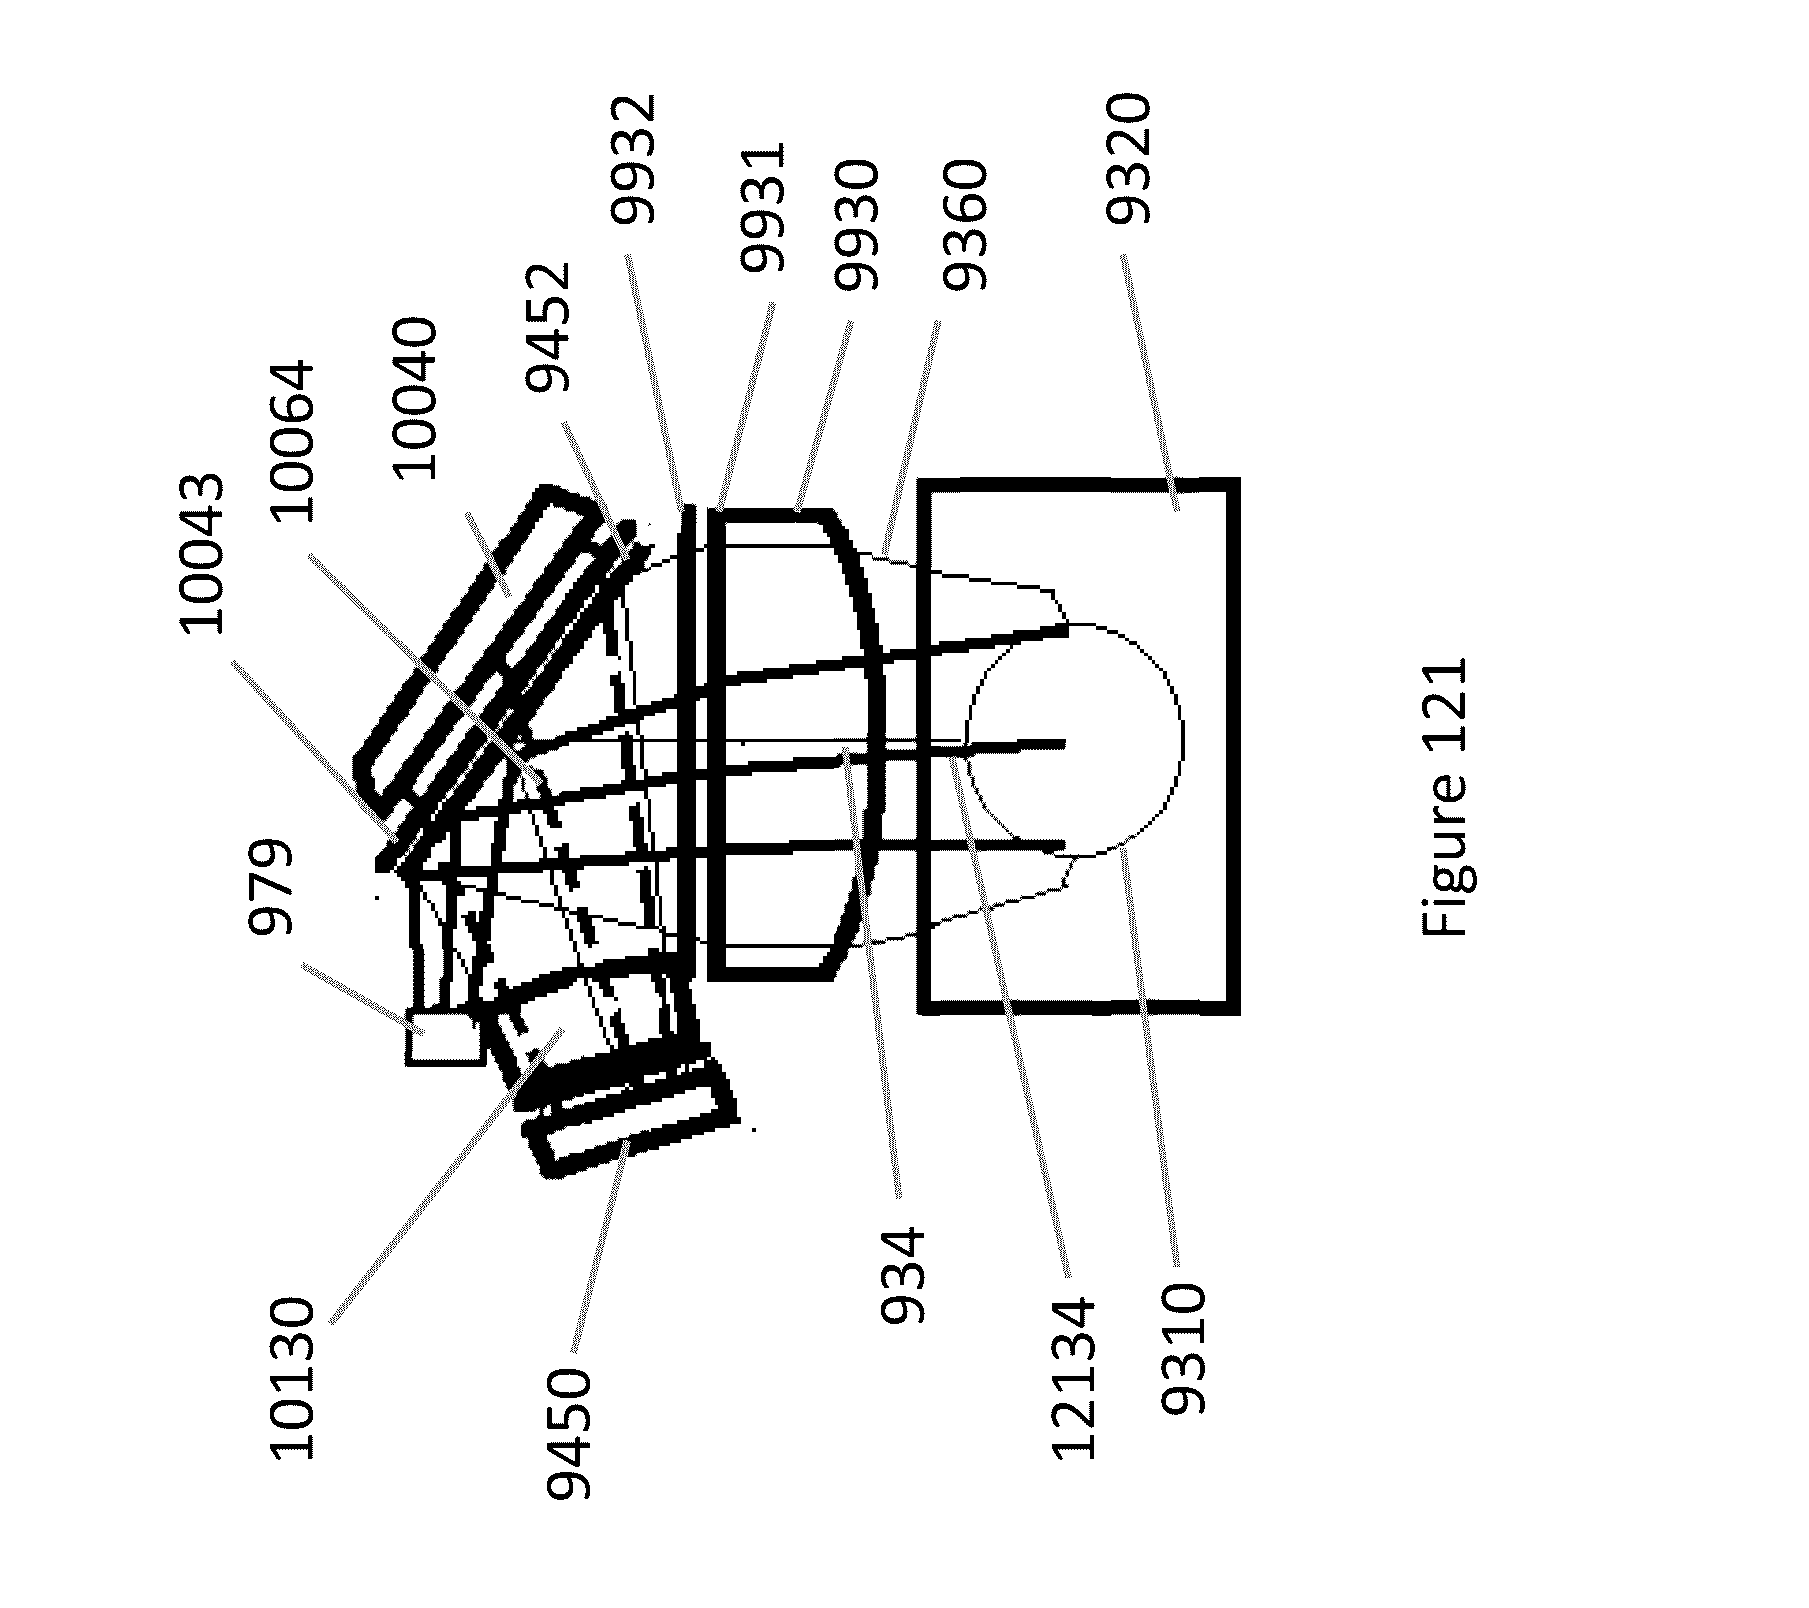 Patent Us 9658457 B2 Led Light Bulbs Diagram The Subtle Circuitry Behind Lighting Ieee Images